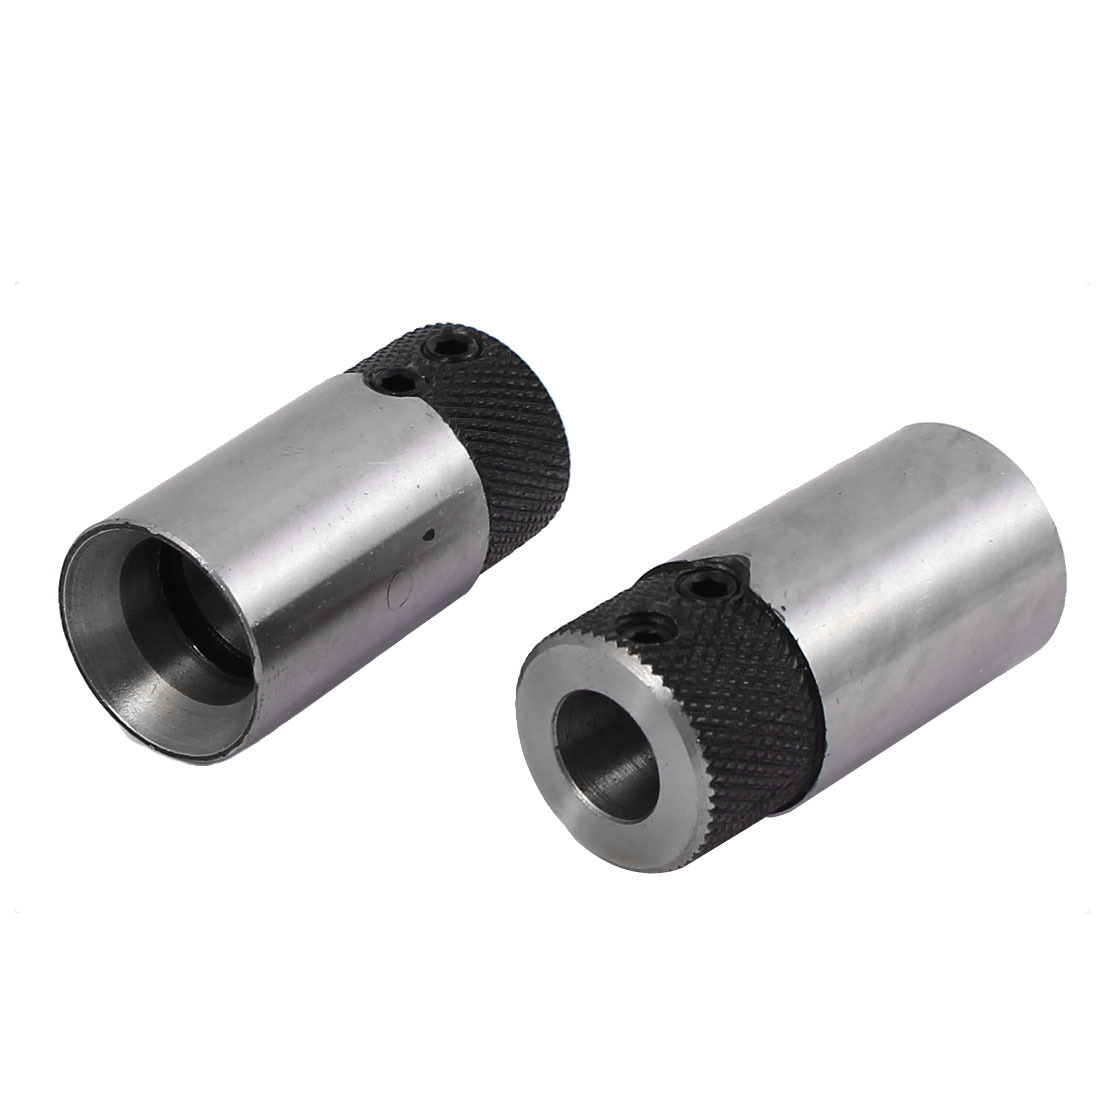 2pcs 20mmx14mmx45mm Brad Point Boring Drill Sleeve Base Chuck Adapter for 10mm Shank